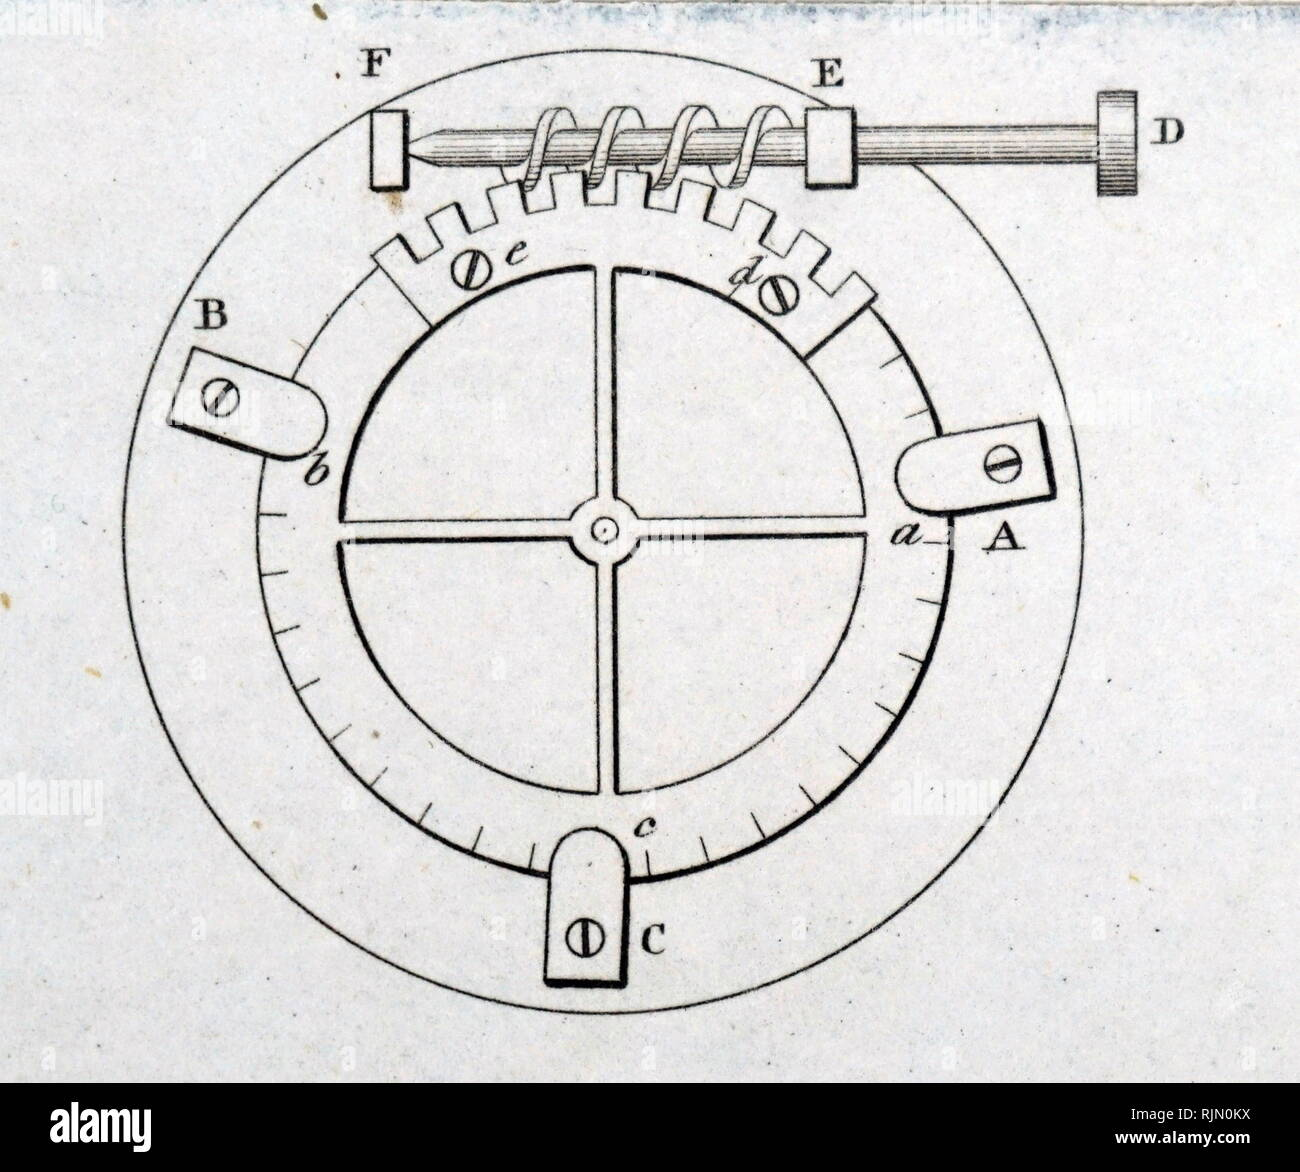 Illustration showing the method used a circle within a larger concentric circle. 1836 - Stock Image